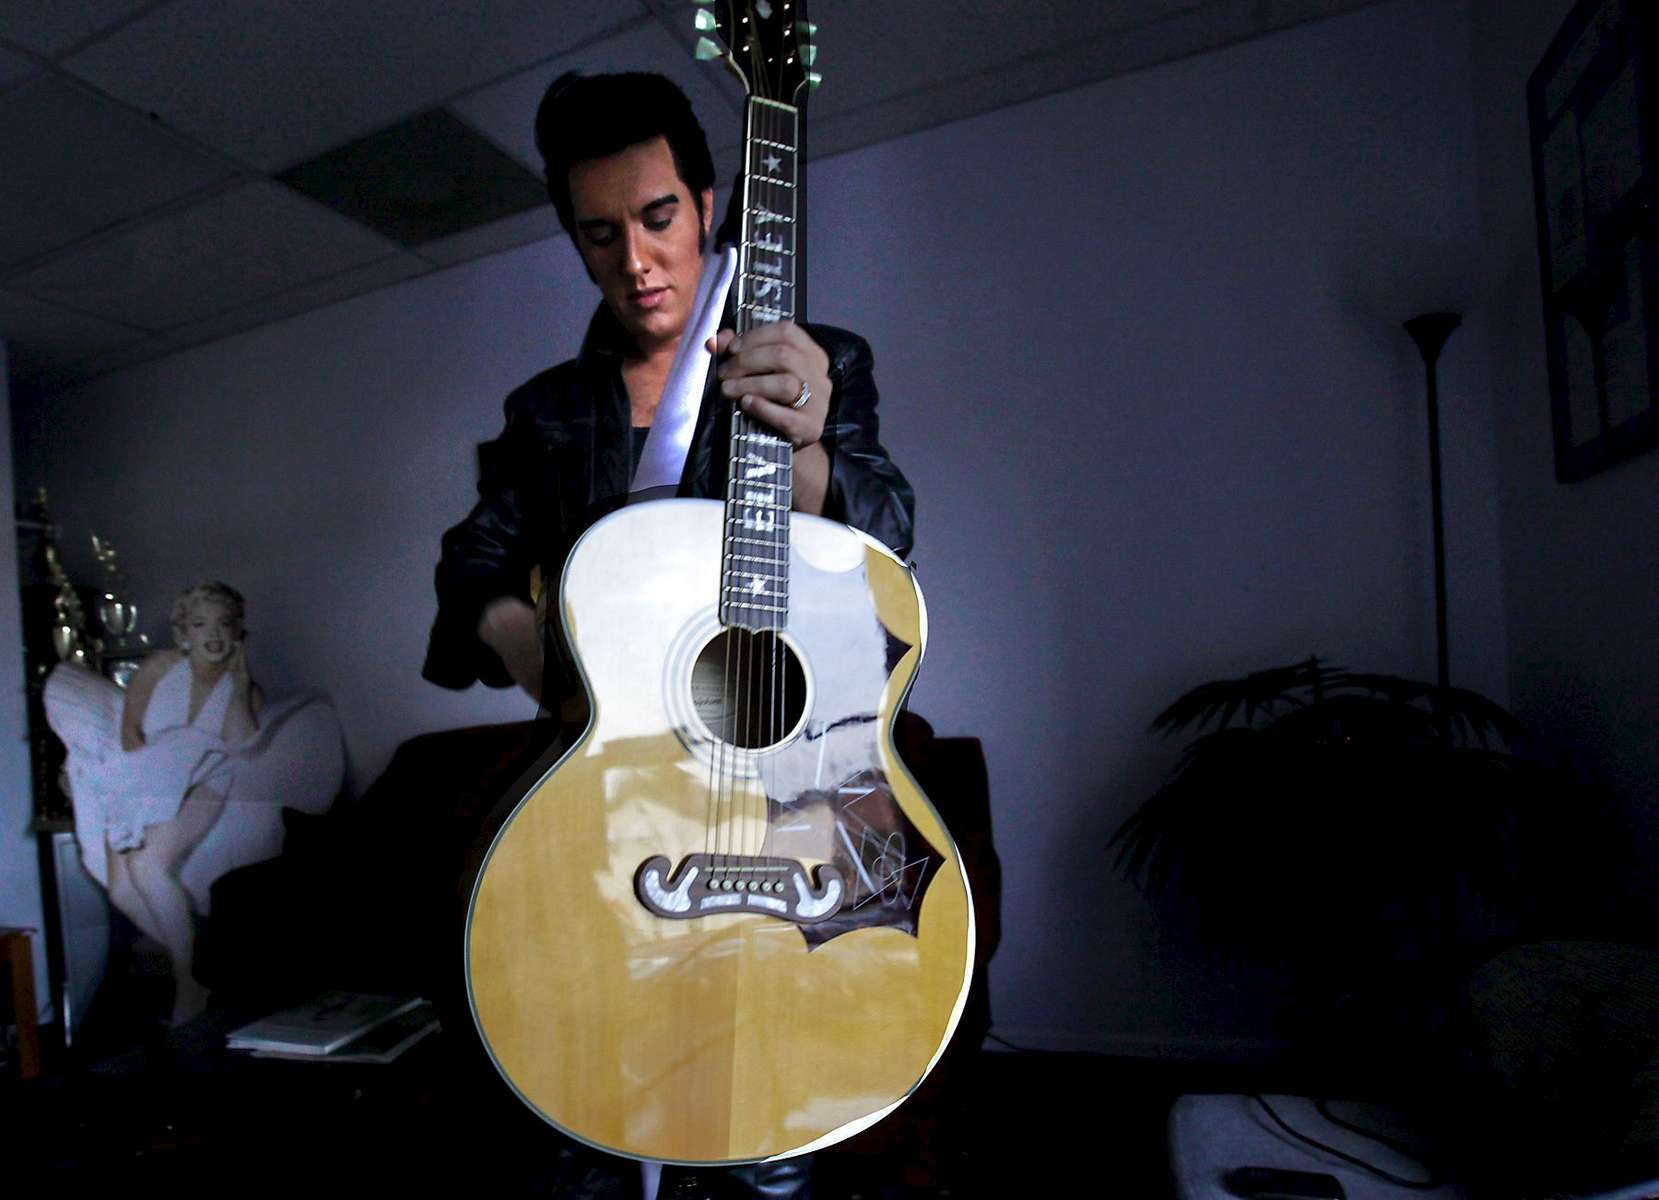 Legends In Concert Elvis tribute artist Nathan Belt prepares for a show in August while waiting in an upstairs meeting room at the Surfside Beach theatre. The McKinney, TX, native became the featured Elvis at the theatre shortly after winning an Ultimate Elvis preliminary contest at the show in 2009. According to a recent survey by Elvis Presley Enterprises, Belt is one of more than 84,000 performers whose principal occupation is paying tribute to the late king of rock.